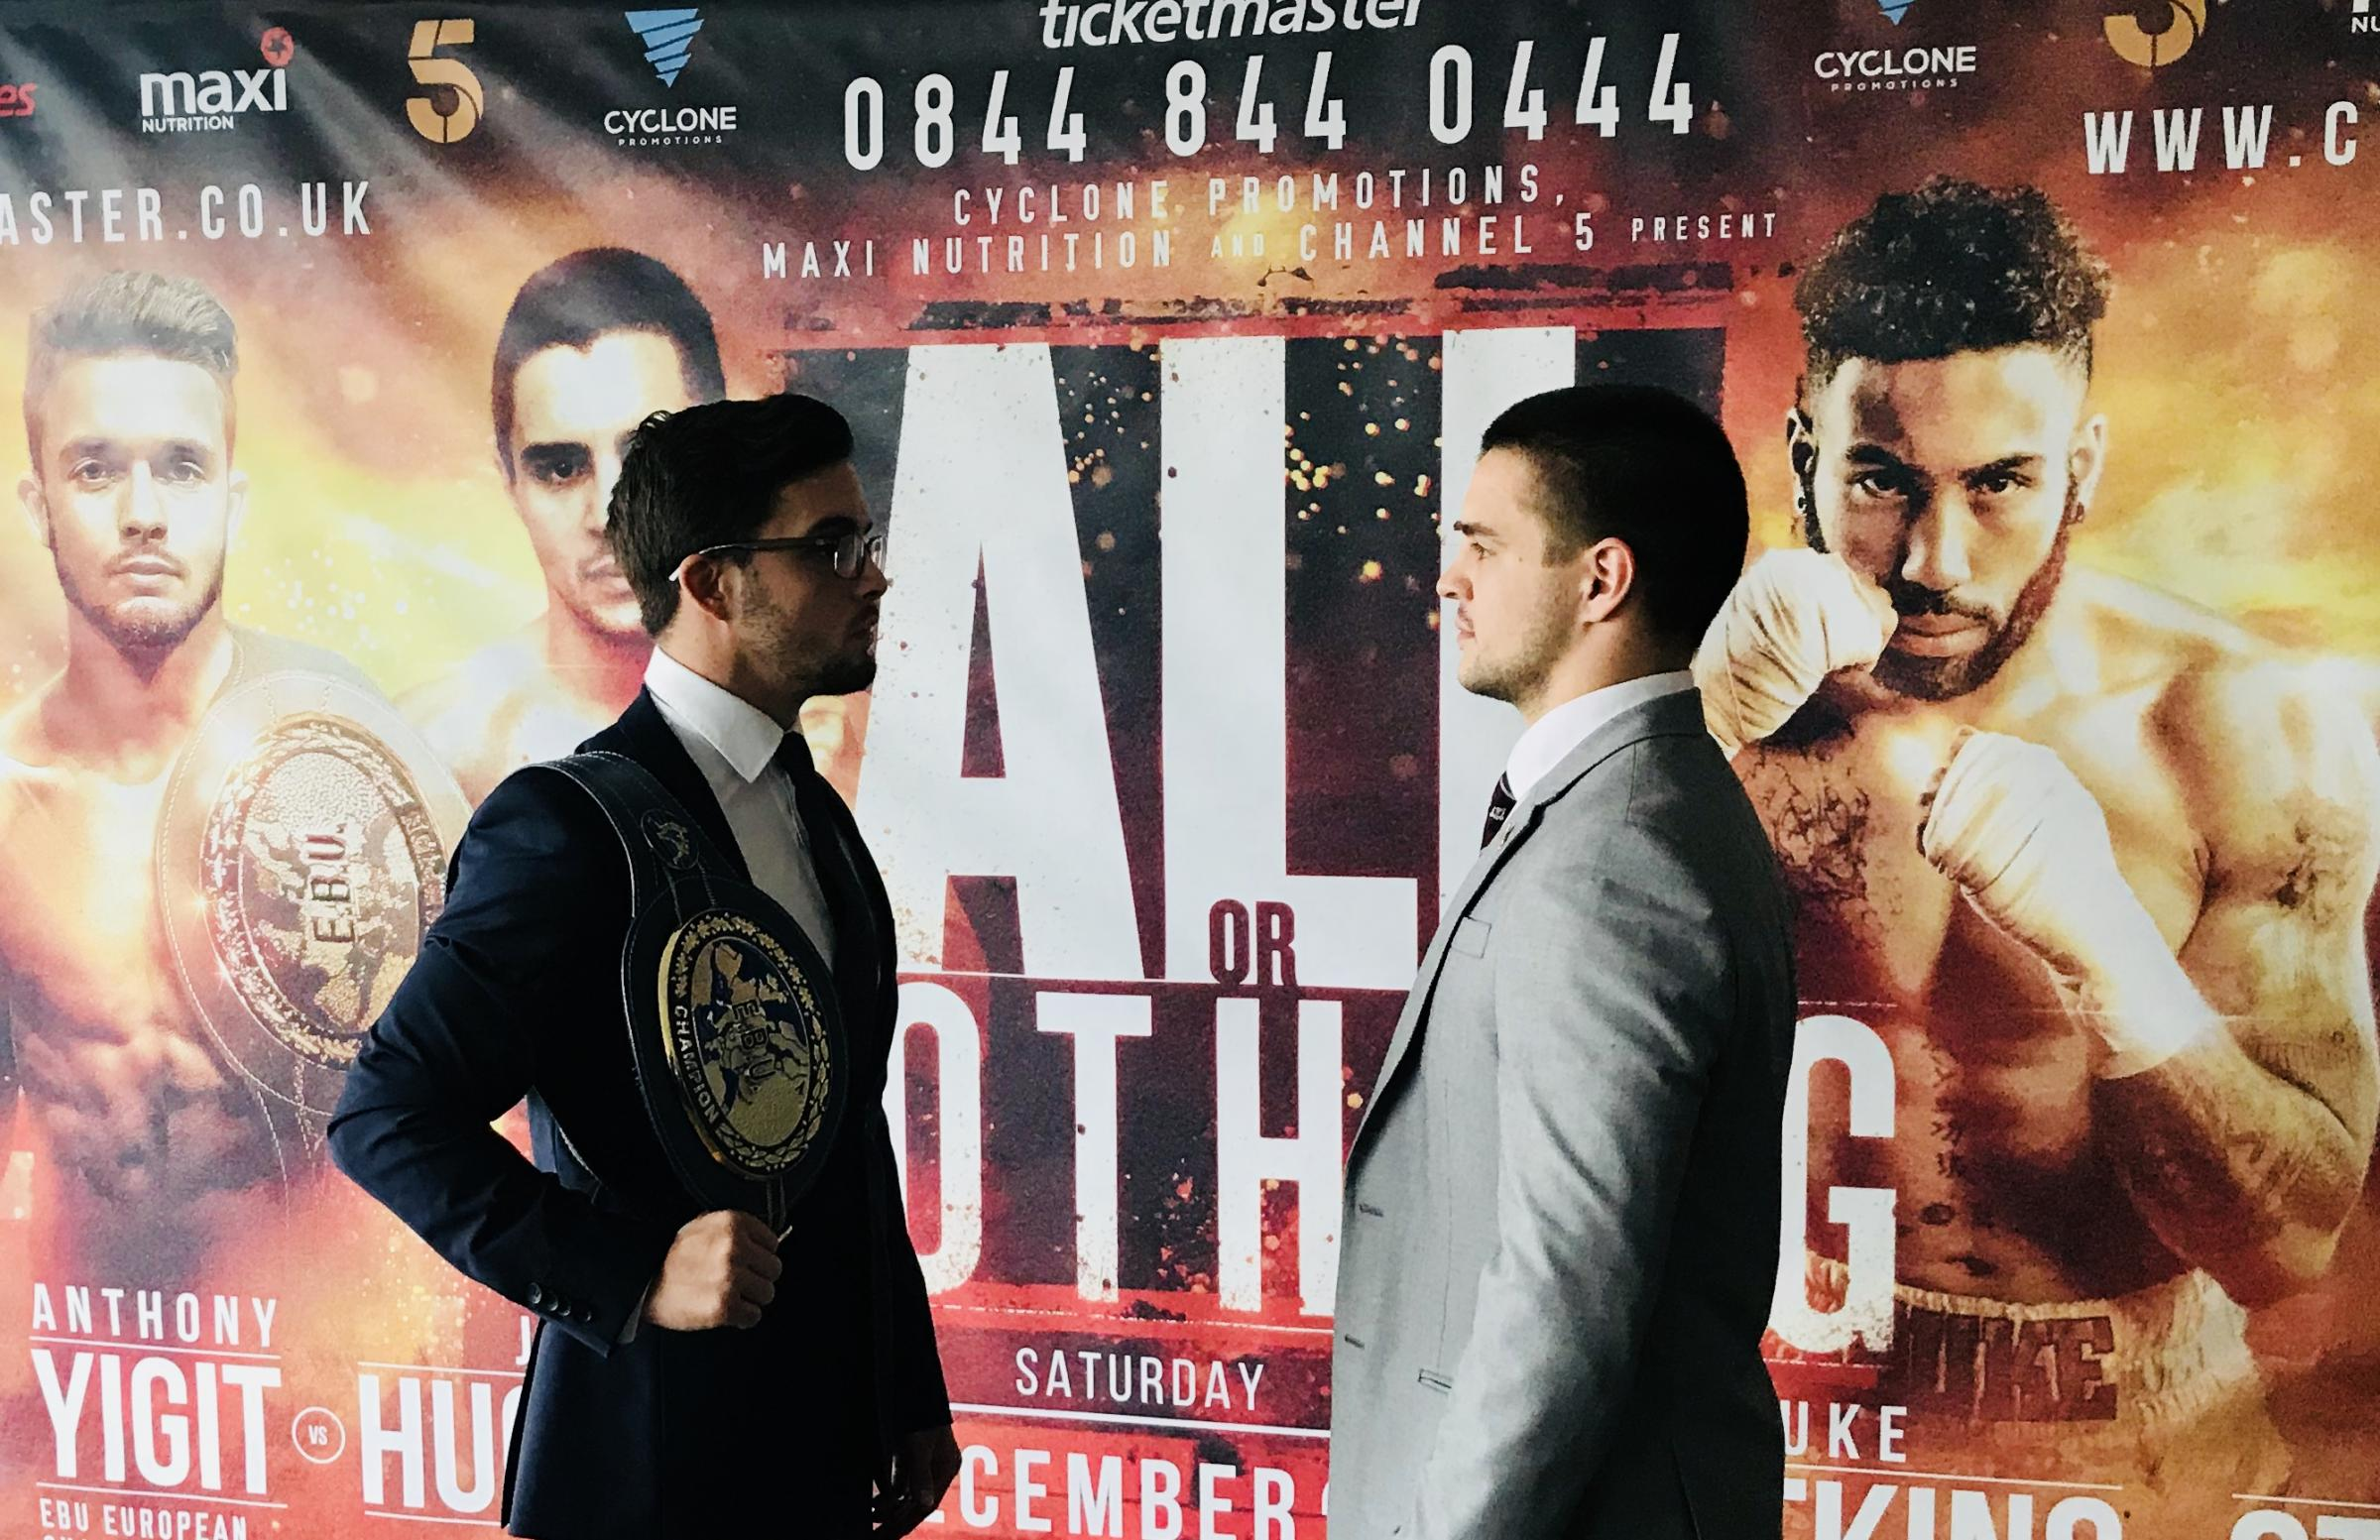 Joe Hughes (right) faces off with European champion Anthony Yigit ahead of their fight Picture: CYCLONE PROMOTIONS